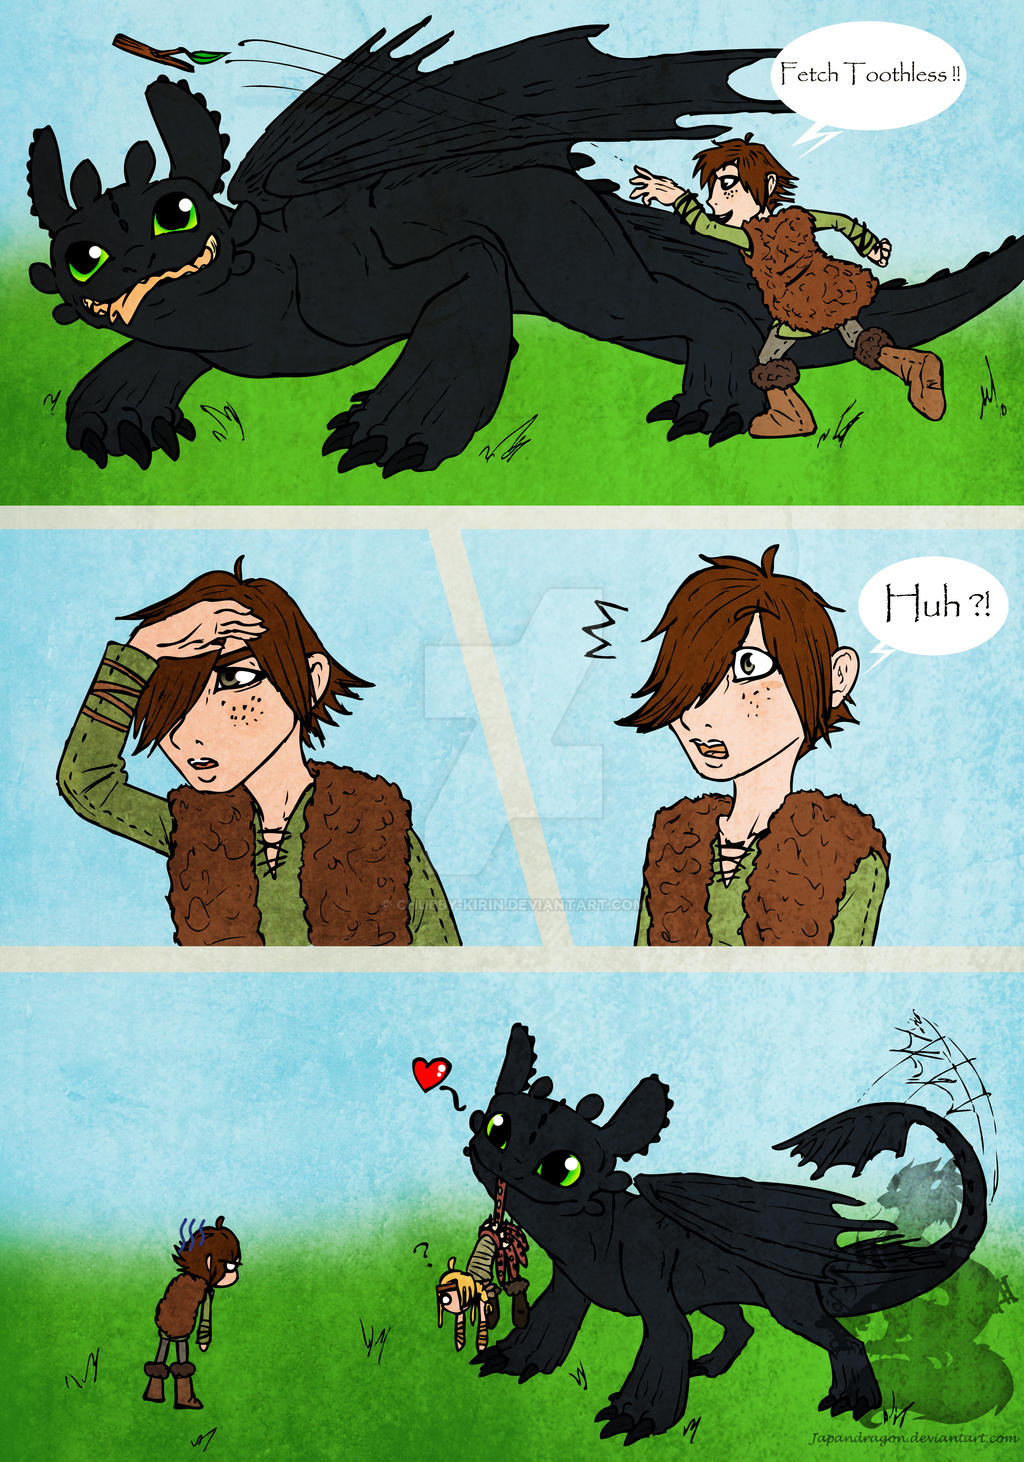 Fetch Toothless By Japandragon On Deviantart-9643